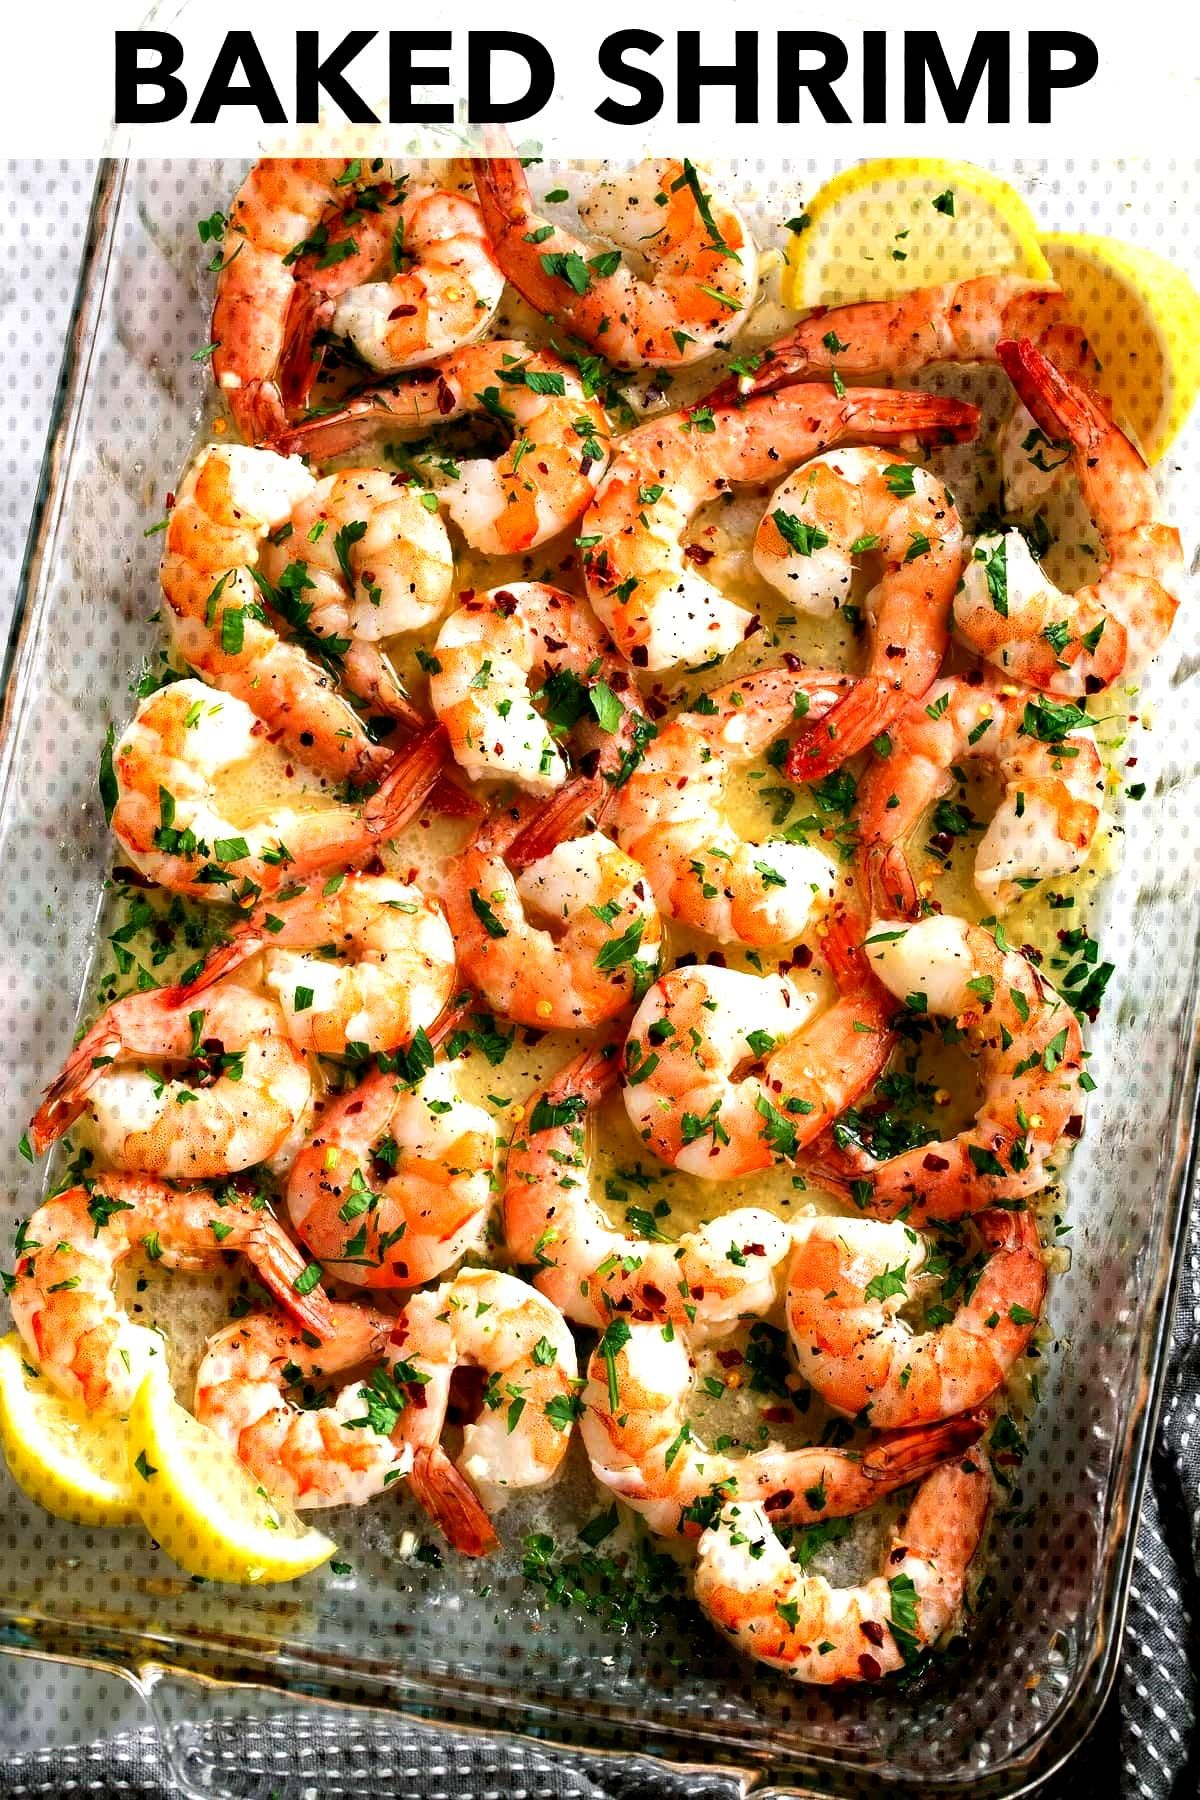 Baked Shrimp with a simple Garlic Lemon Butter Sauce - this recipe couldnt get any easier and you